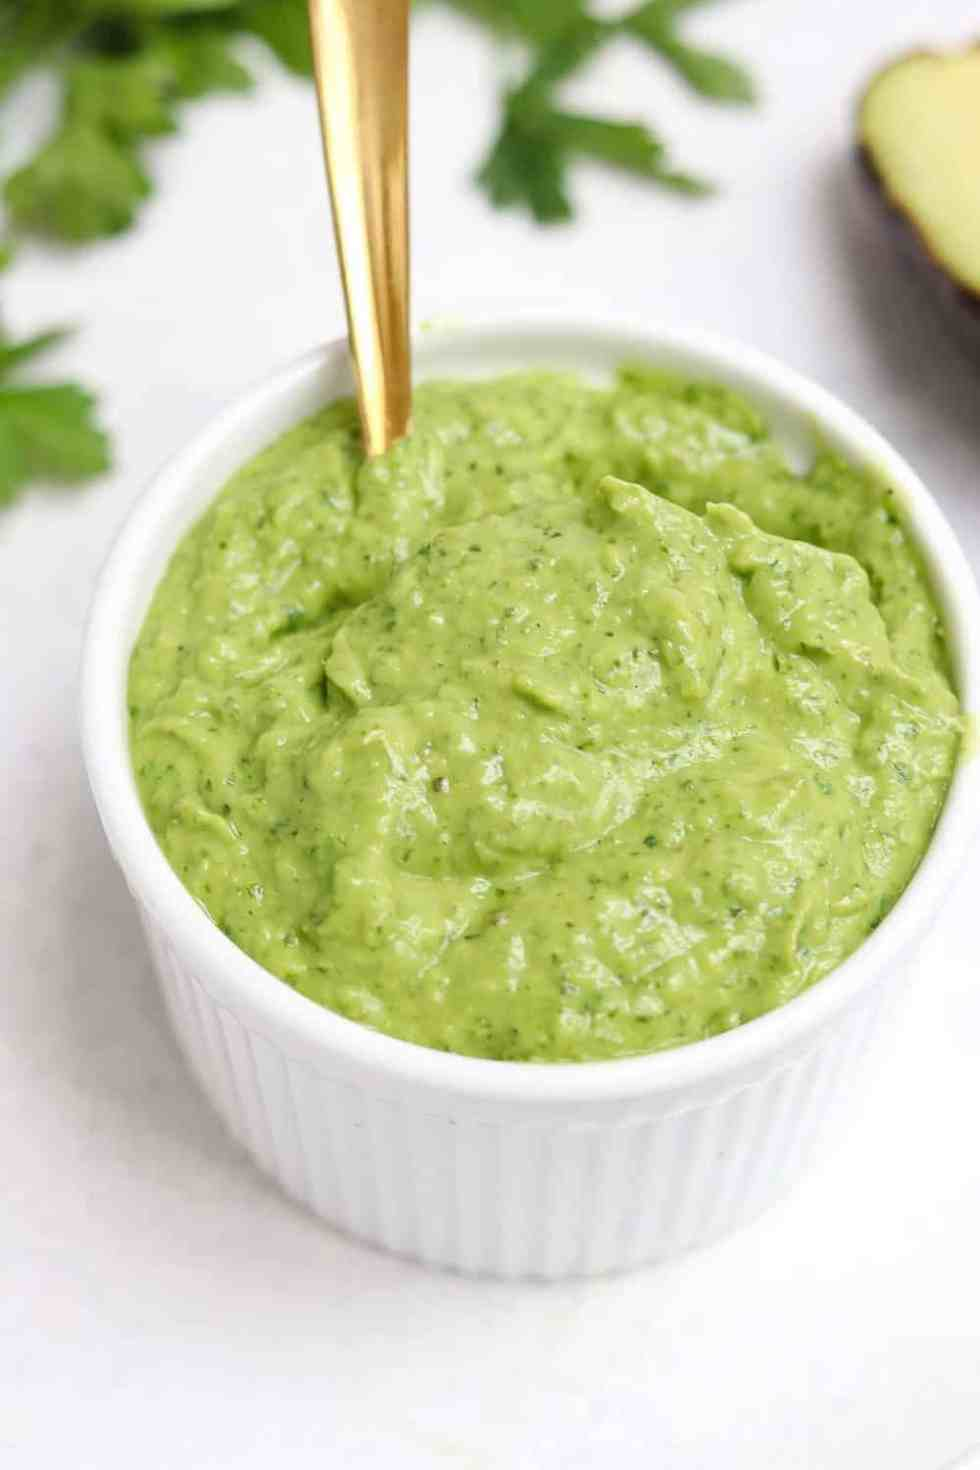 Up close of green goddess dressing in a small white ramekin.